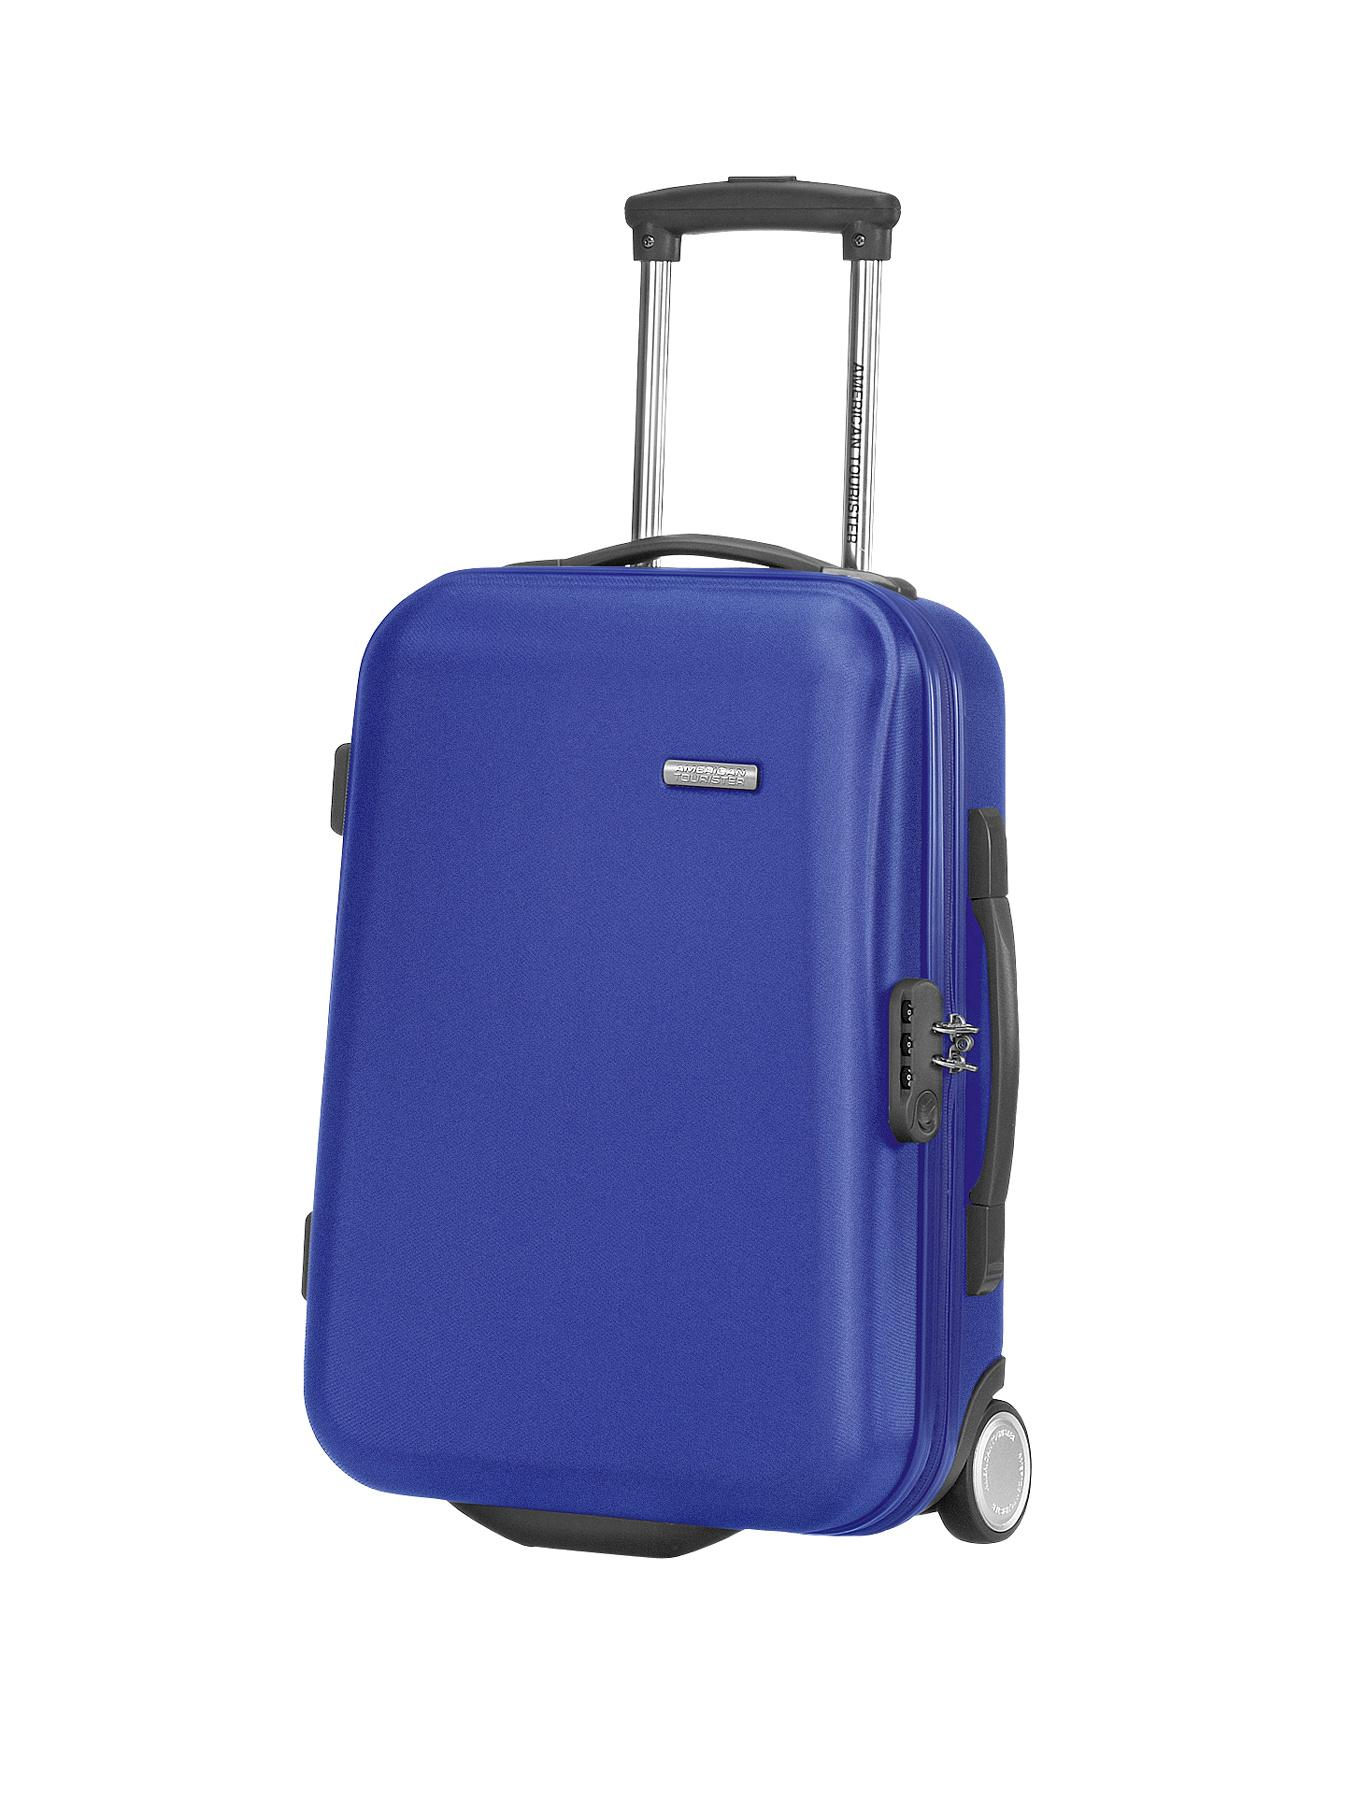 AMERICAN TOURISTER Jazz Diamond Upright 55cm Cabin Case - Blue, Blue